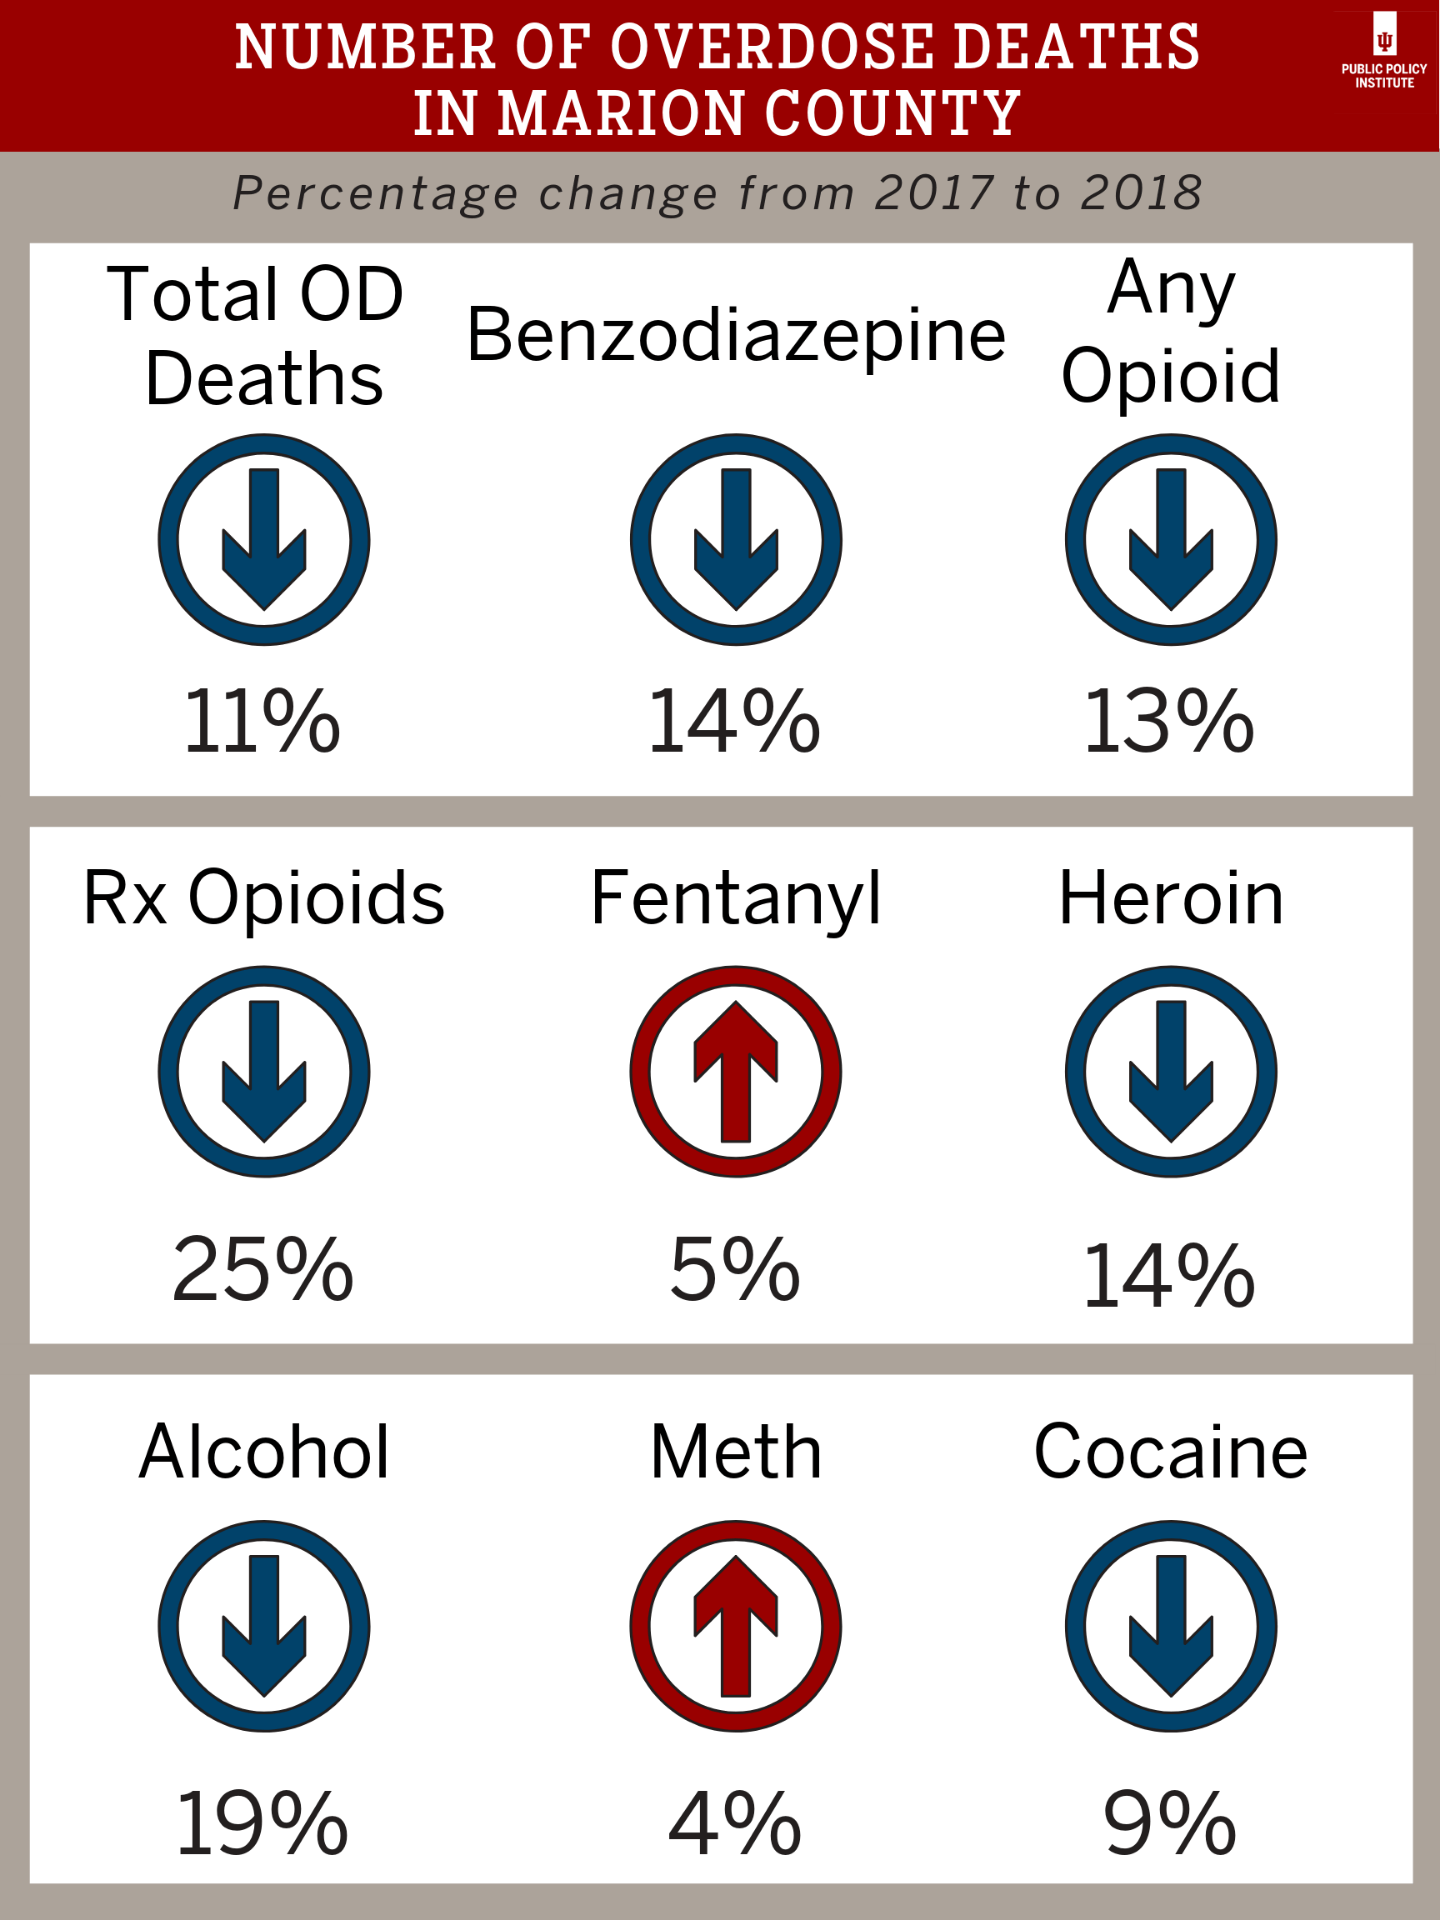 Data on drops in overdose deaths and many substances. Data show a 5% rise in fentanyl-related deaths and 4% in meth-related.